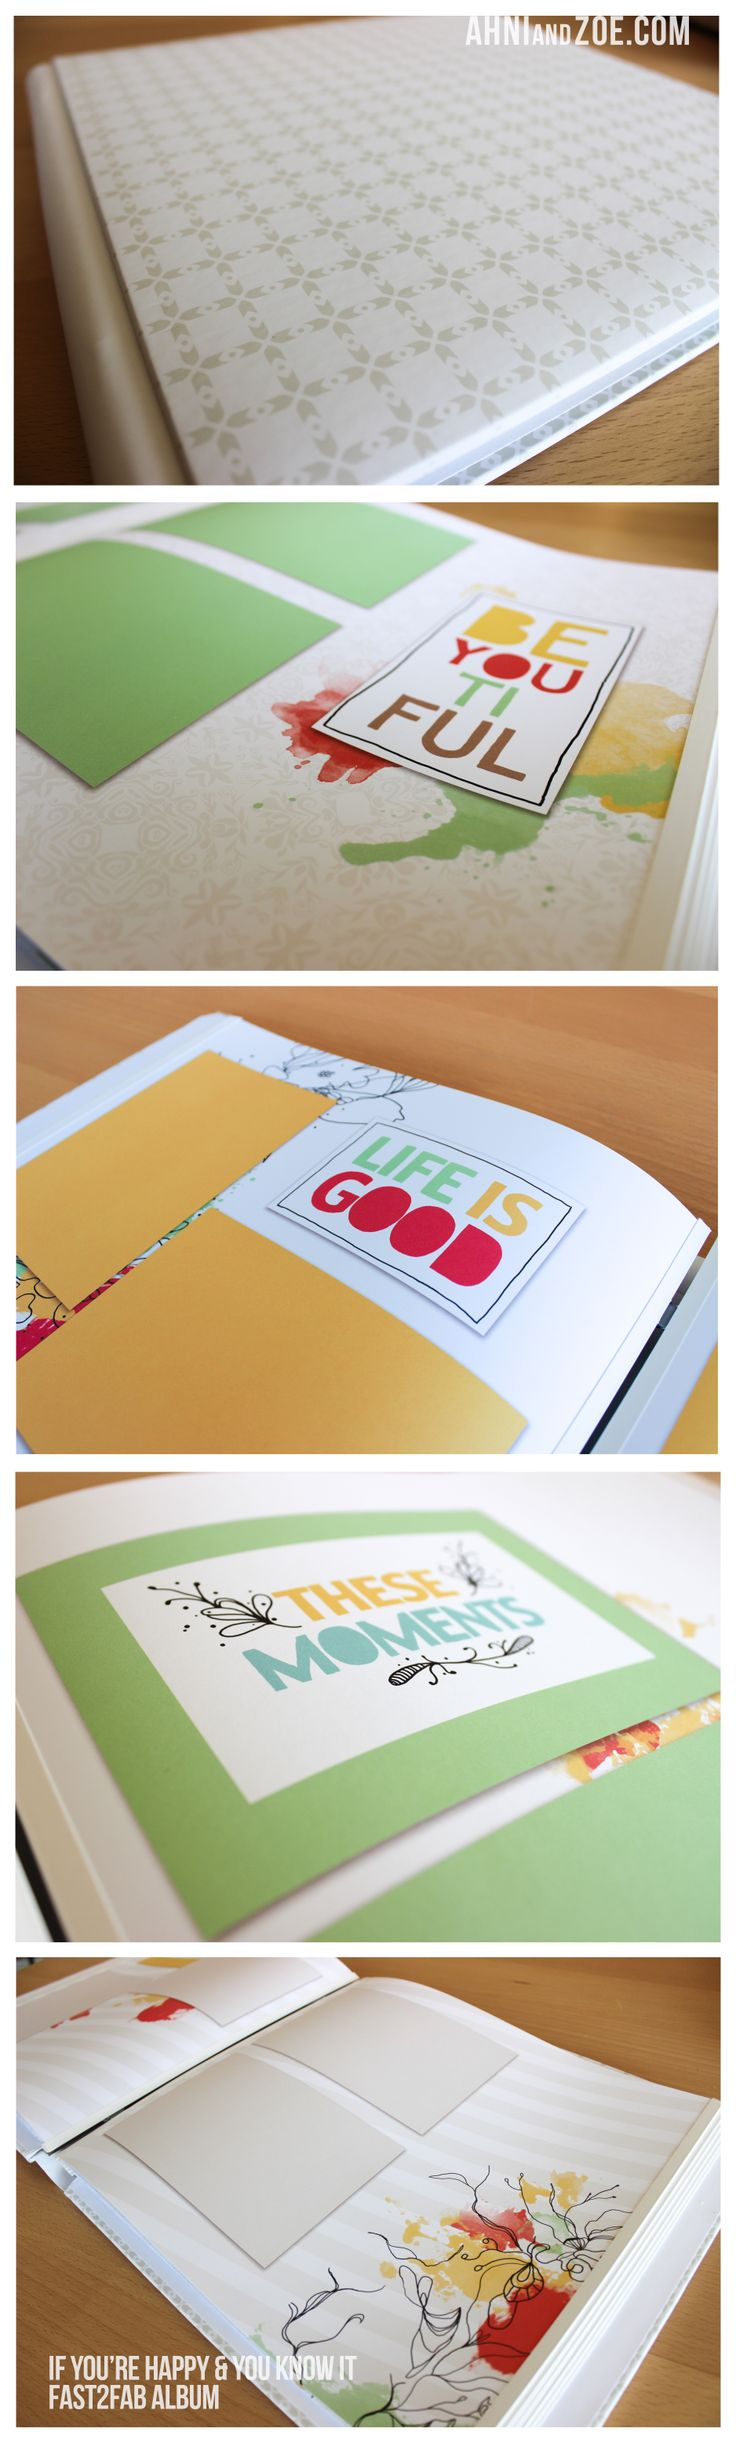 How to refill scrapbook pages - If You Re Happy You Know It Fast2fab Album And Refill Pages